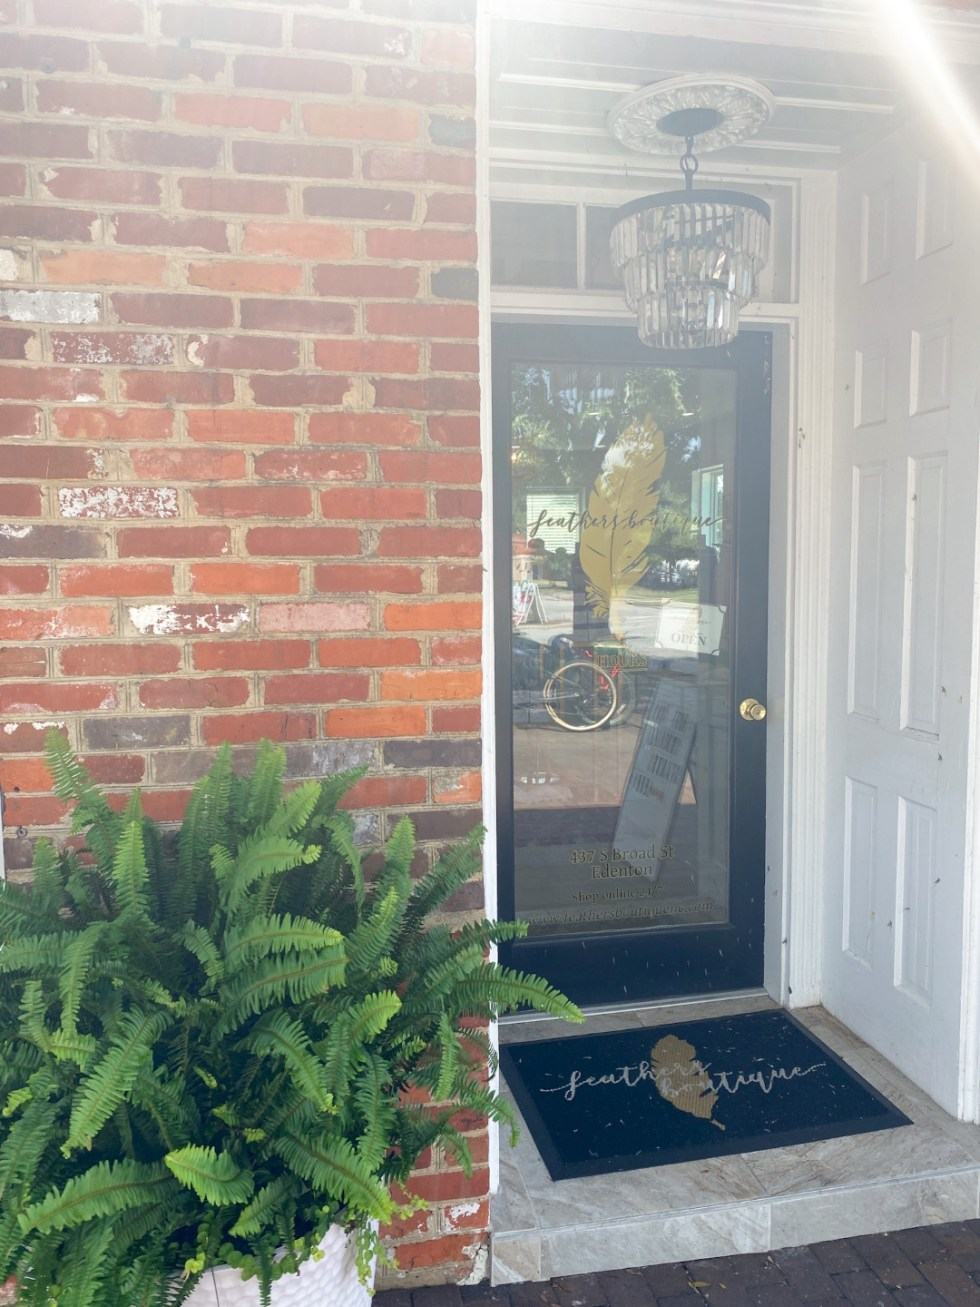 Top 10 Best Things to Do in Edenton, NC: A Complete Travel Guide - I'm Fixin' To - @imfixintoblog | Edenton Travel Guide by popular NC travel guid, I'm Fixin' To: image of the Feathers Boutique.